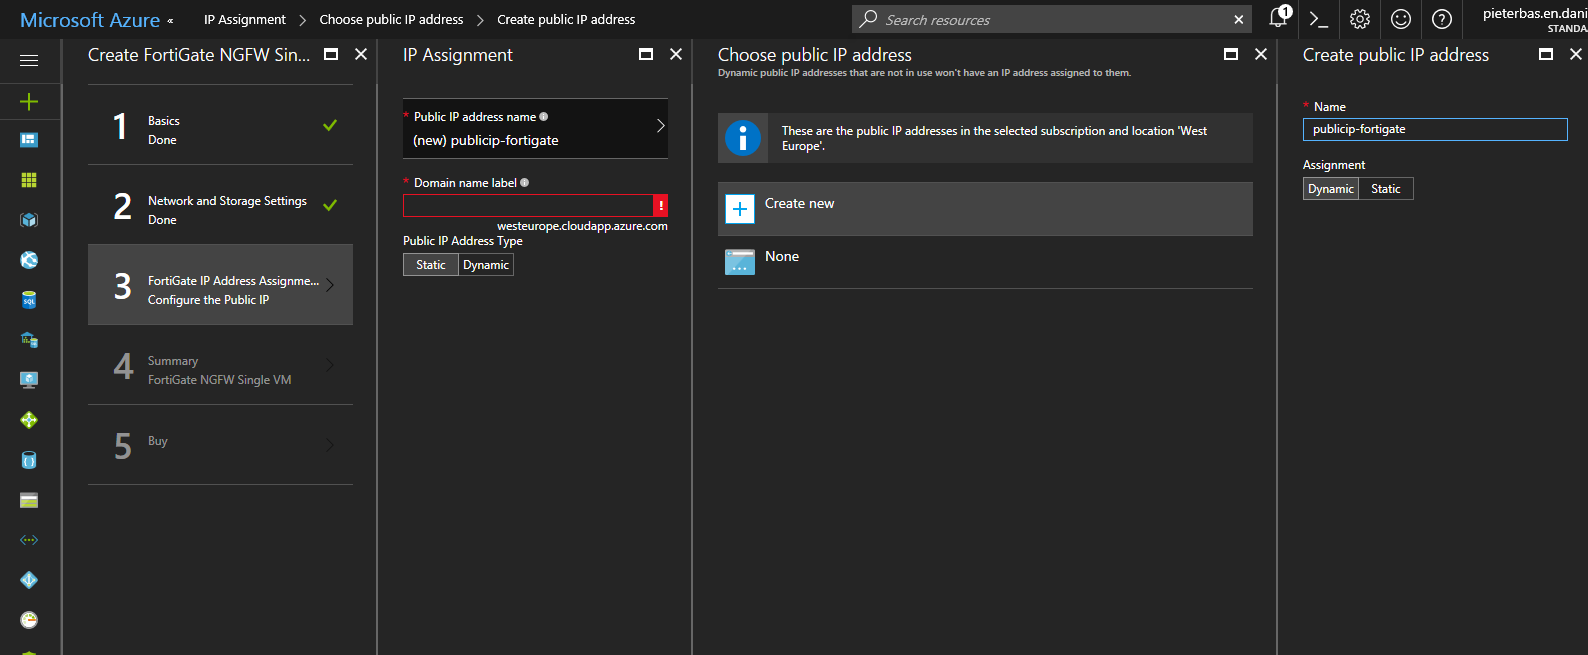 Create NGFW Fortigate (Single VM) – Azure IT is!